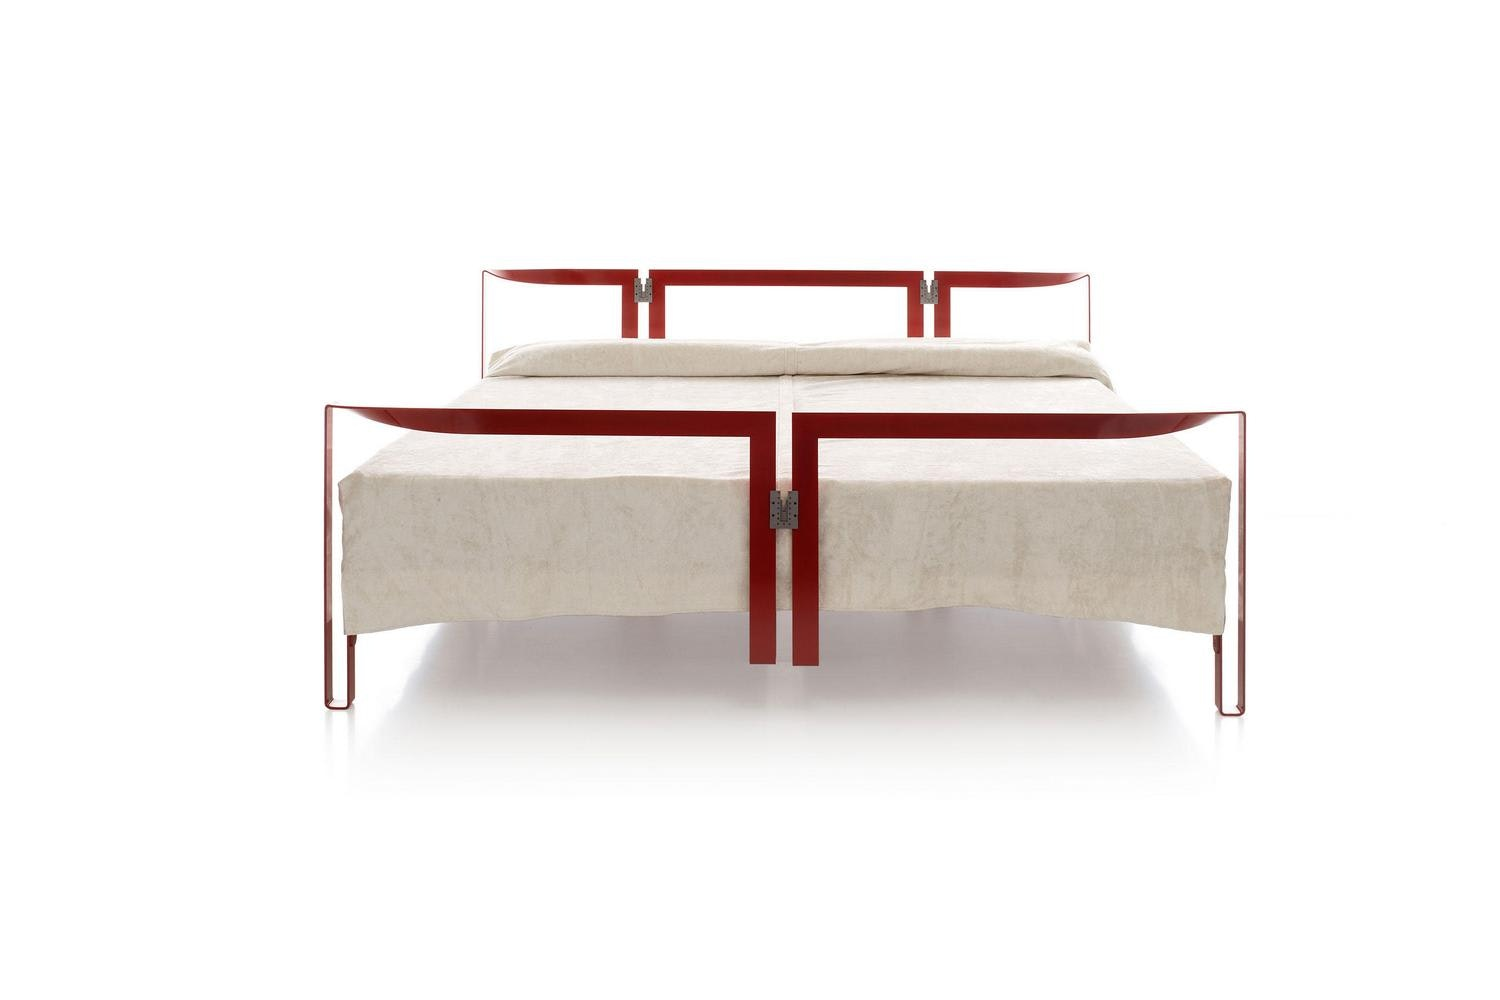 W15 Vanessa Bed by Tobia Scarpa for Cassina